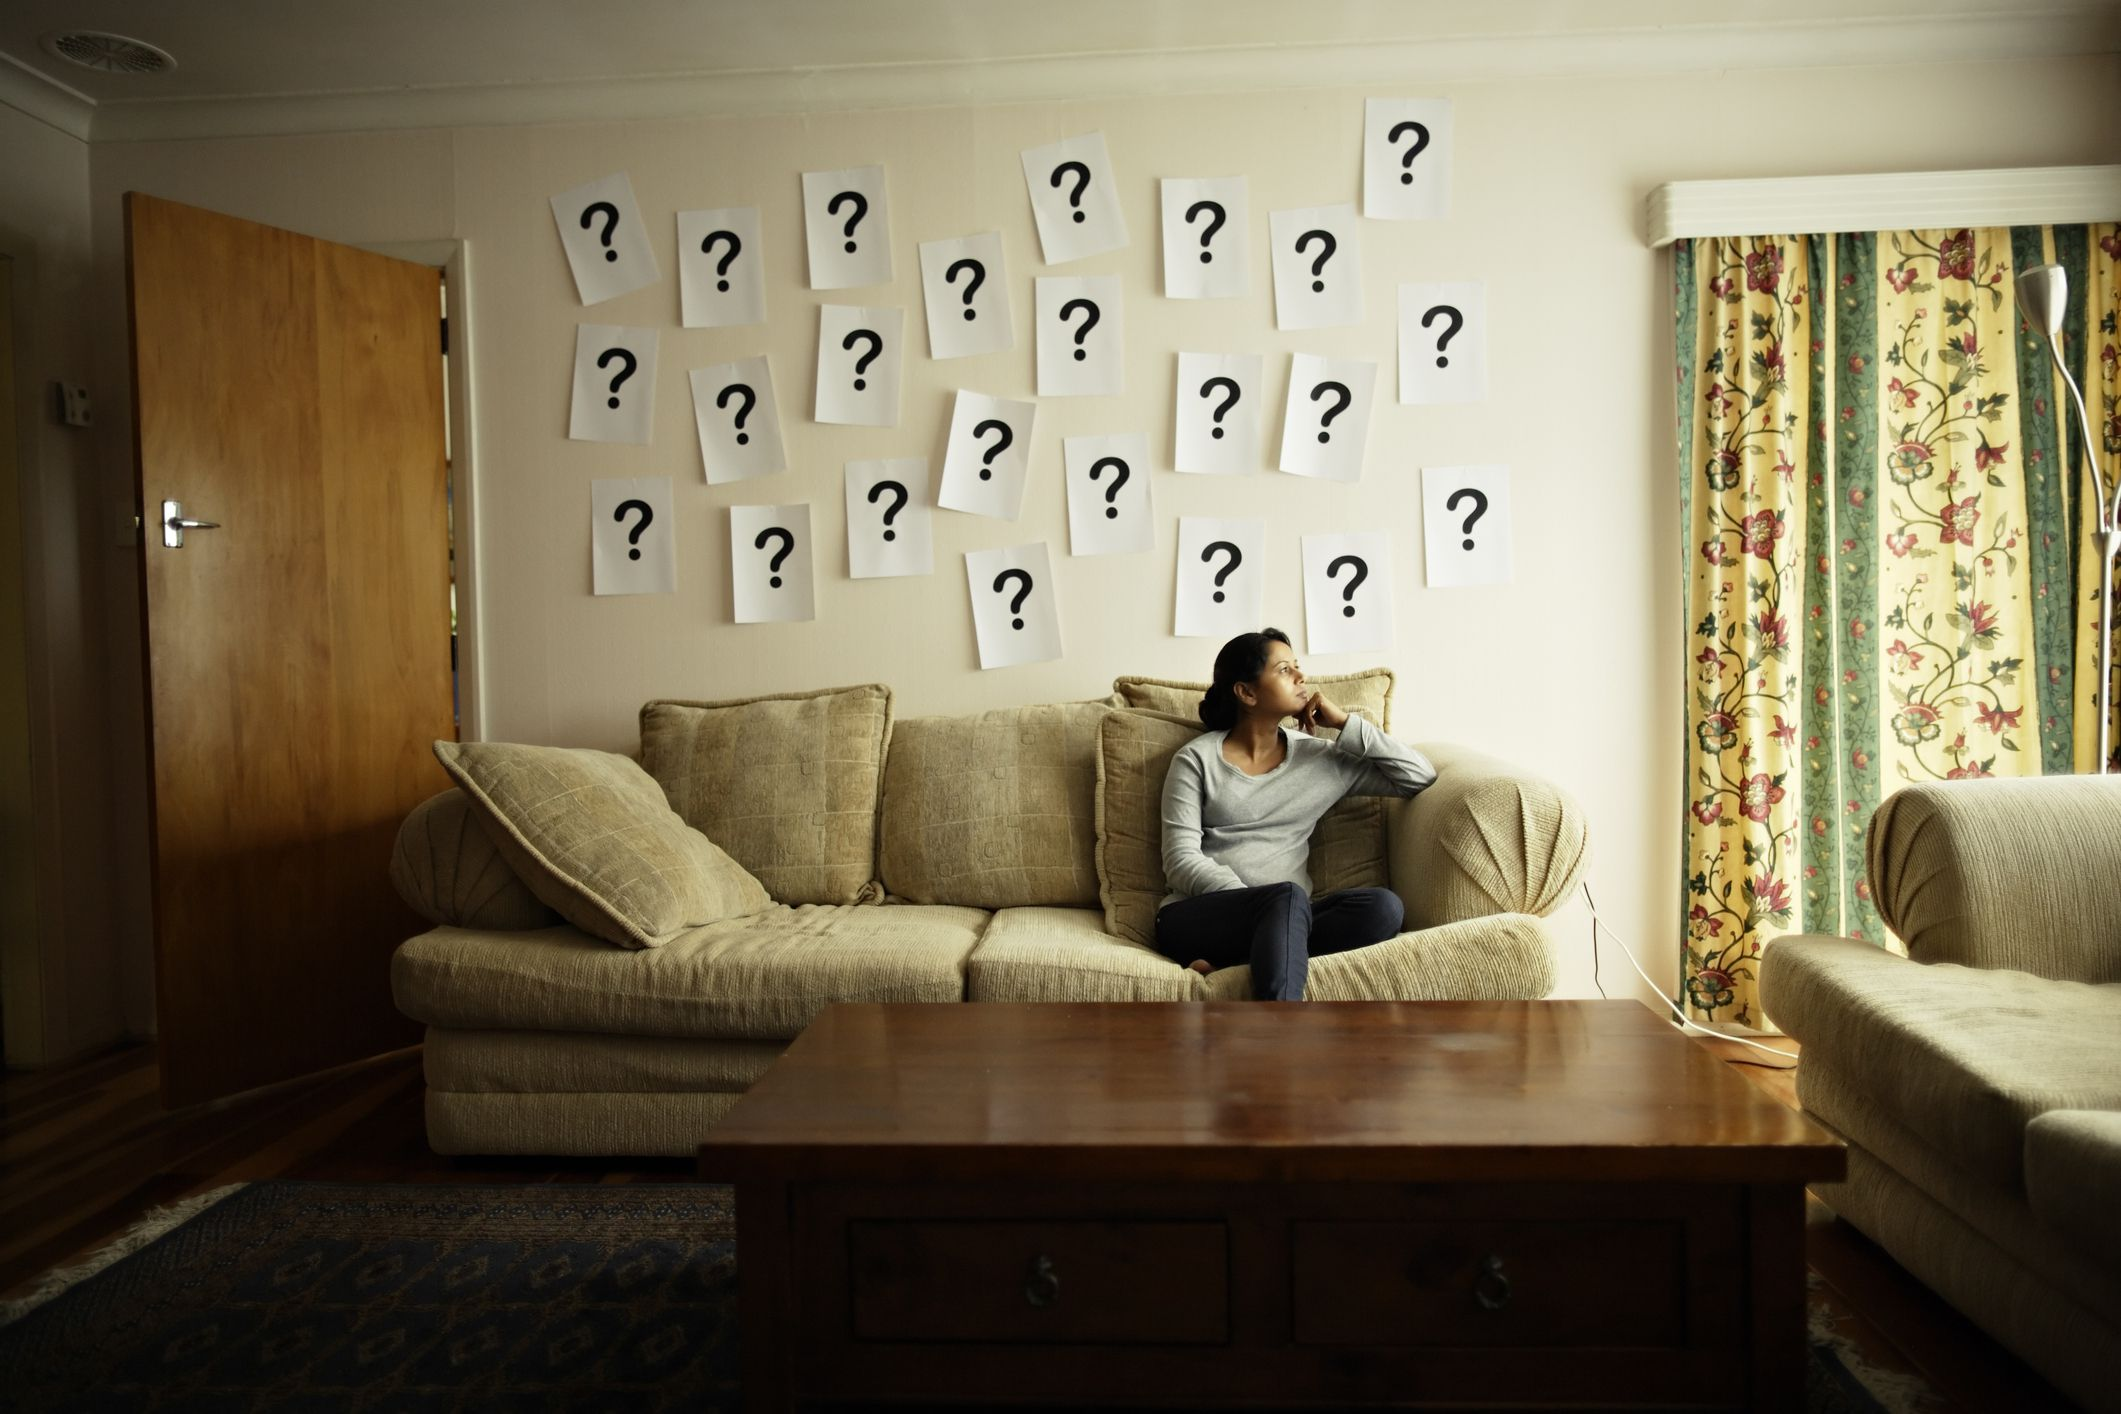 Home Buying Questions to Ask Before Making an fer